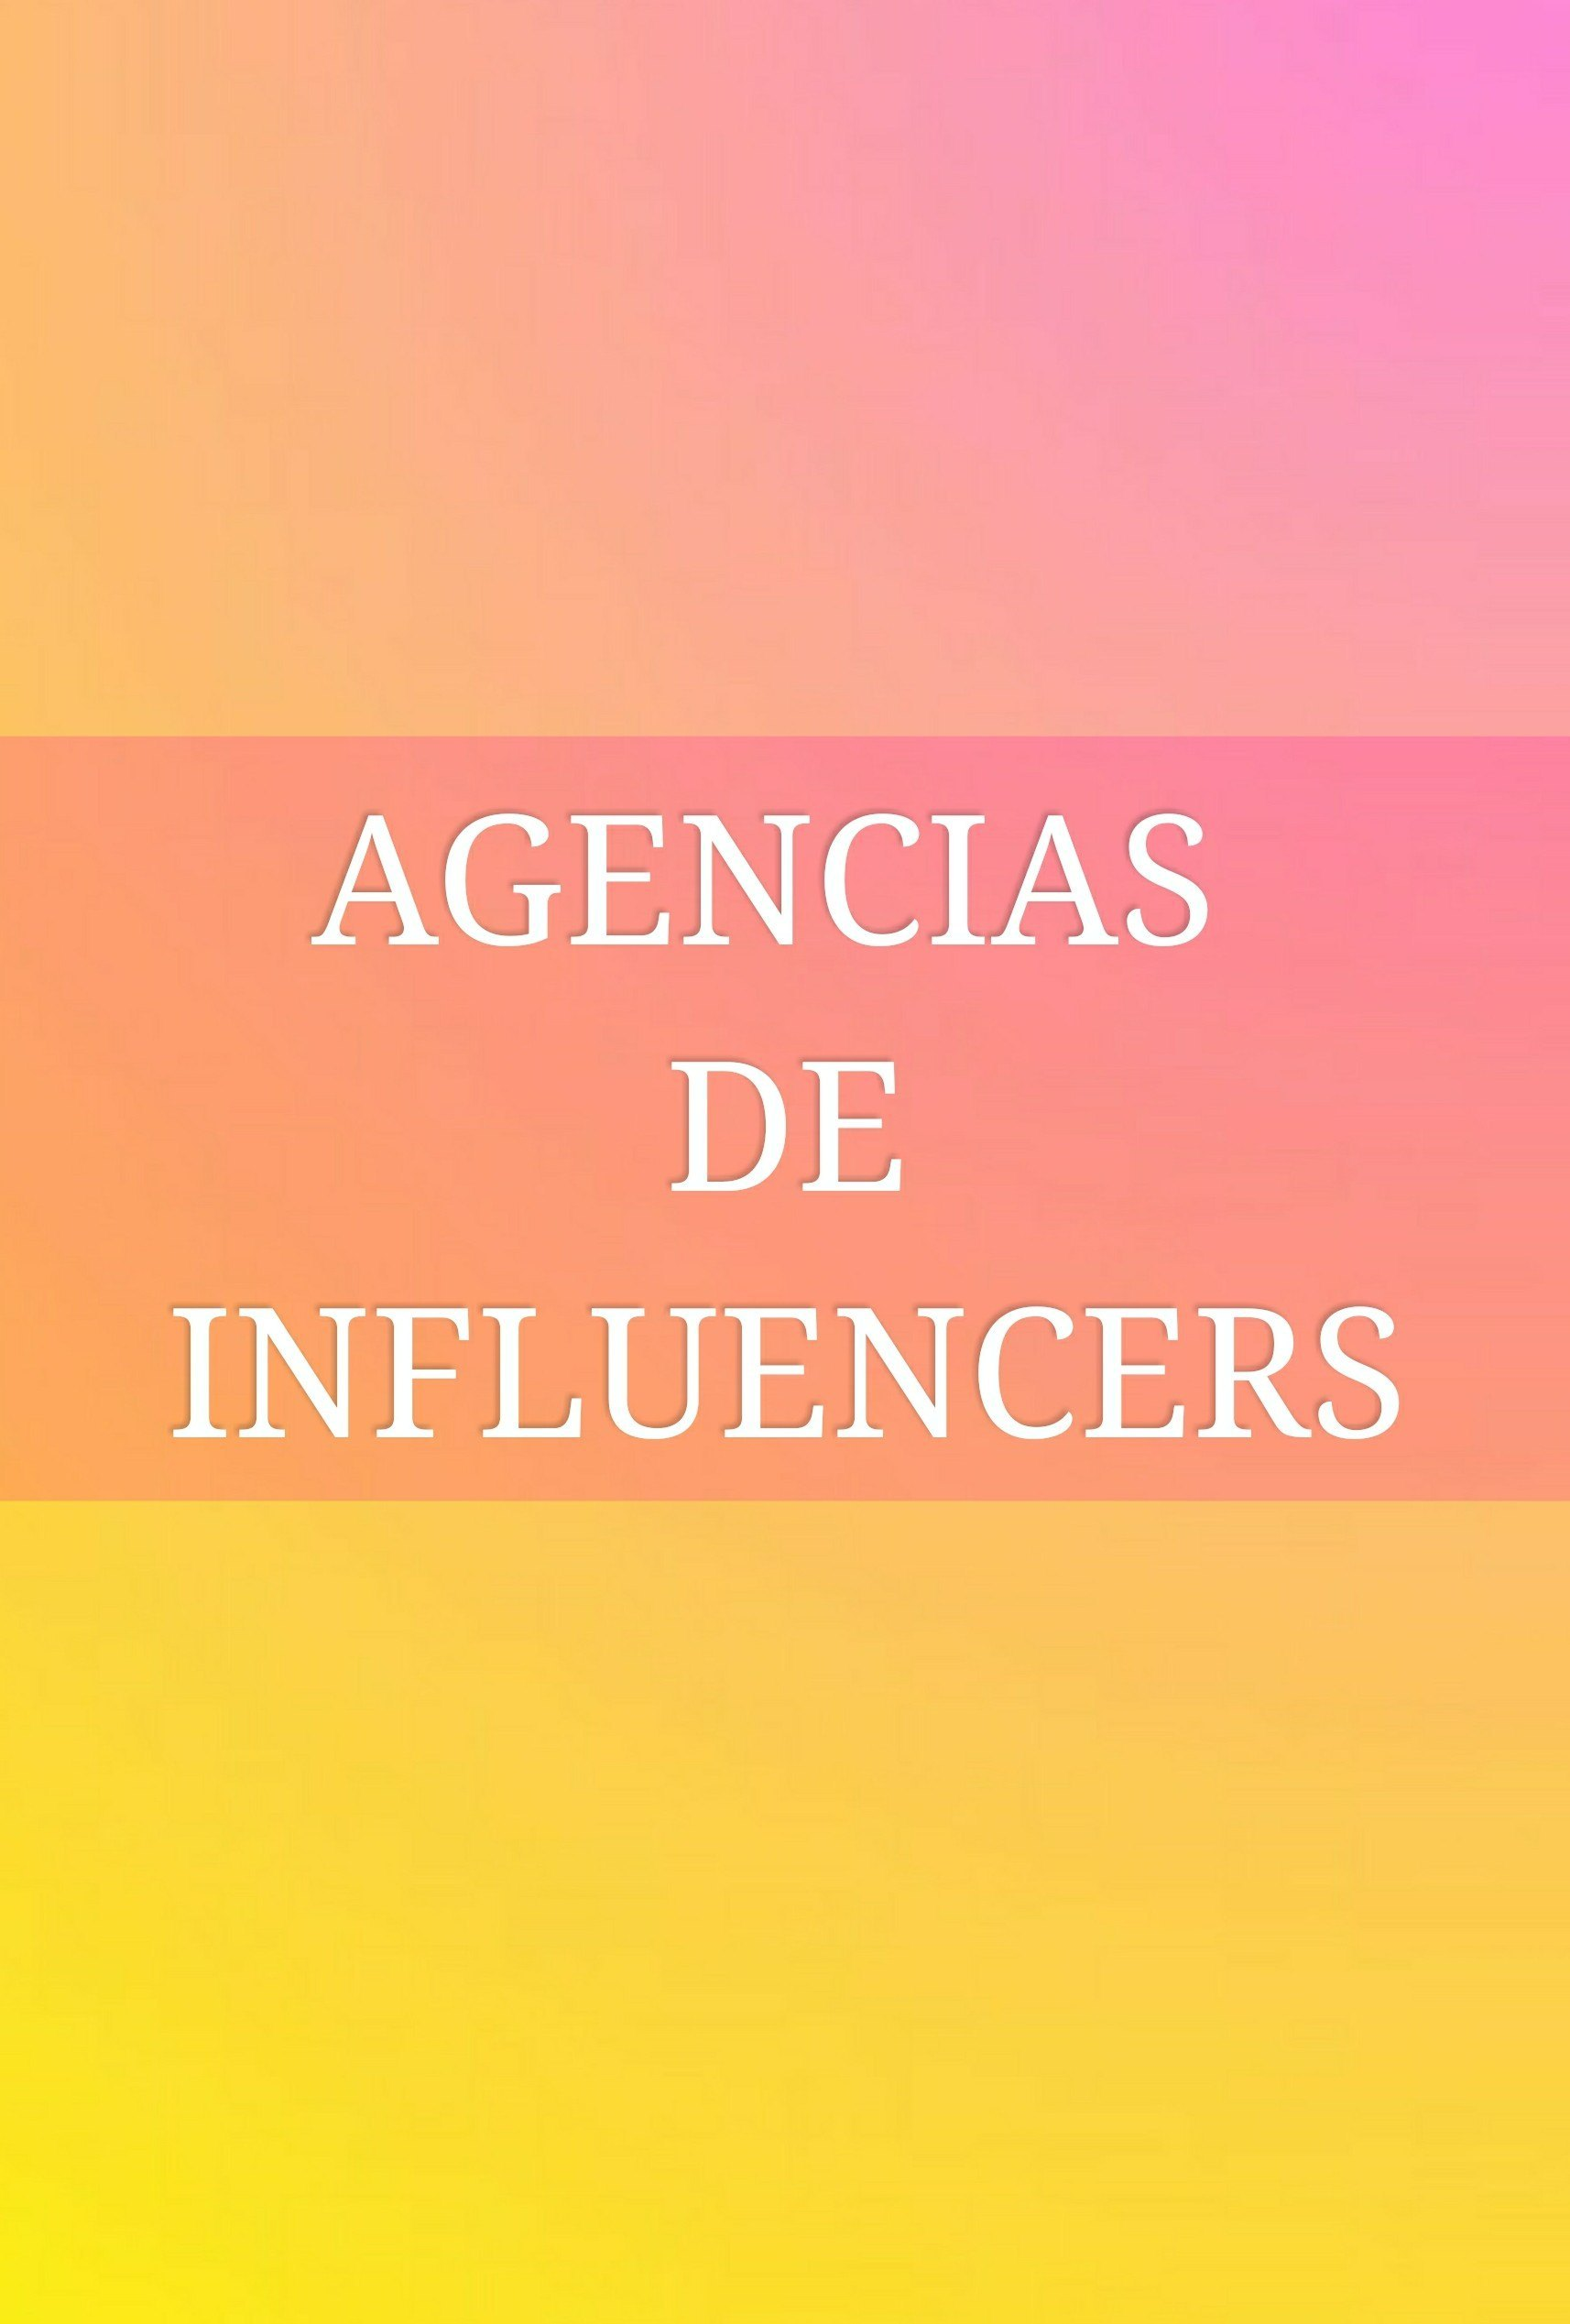 agencias de influencers